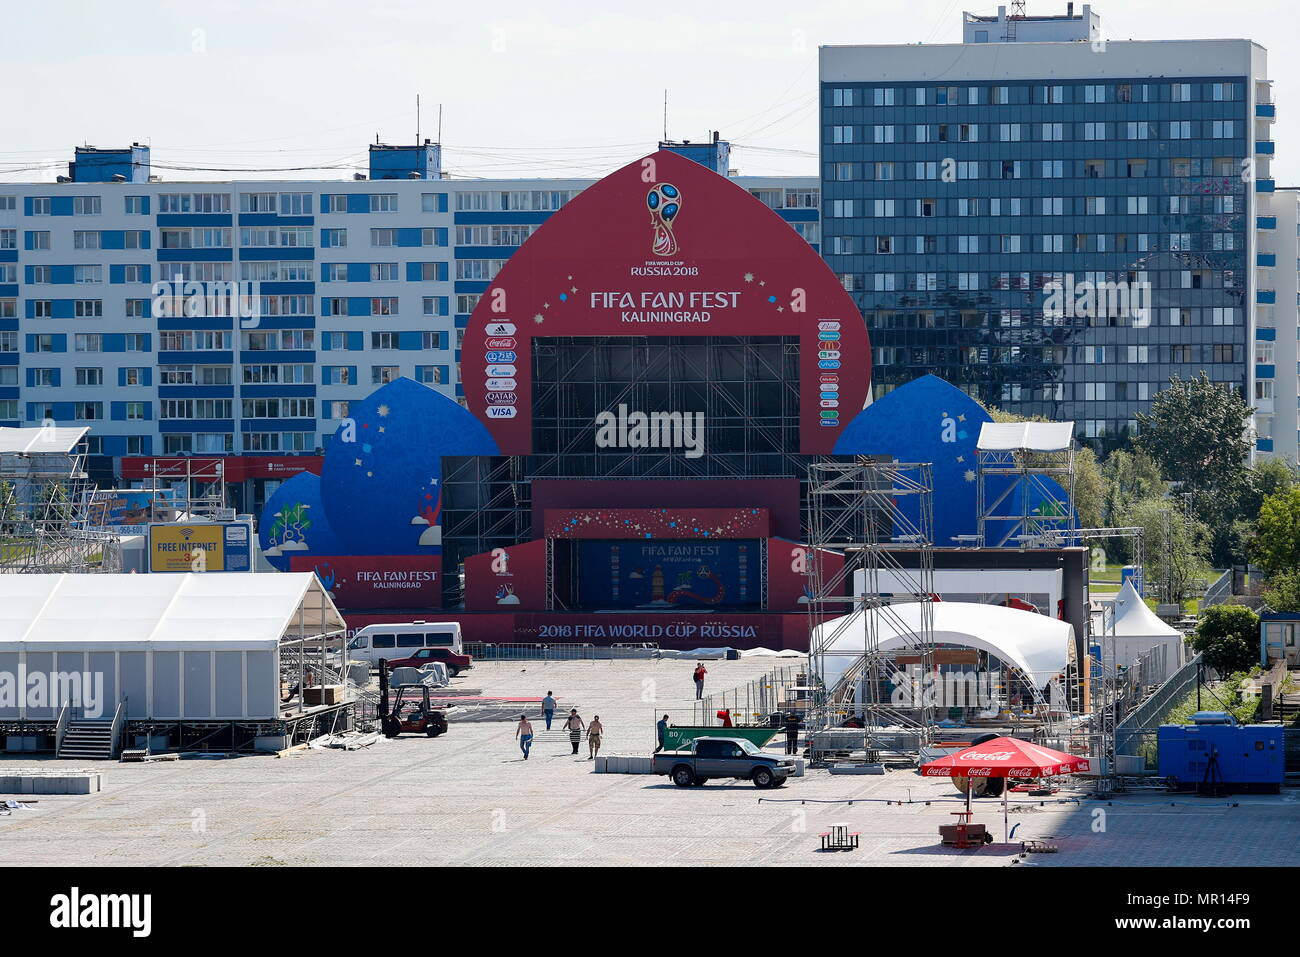 Kaliningrad, Russia. 25th May, 2018. KALININGRAD, RUSSIA - MAY 25, 2018: A FIFA Fan Fest zone is under construction in central Kaliningrad, ahead of the forthcoming FIFA World Cup Russia 2018. Vitaly Nevar/TASS Credit: ITAR-TASS News Agency/Alamy Live News - Stock Image